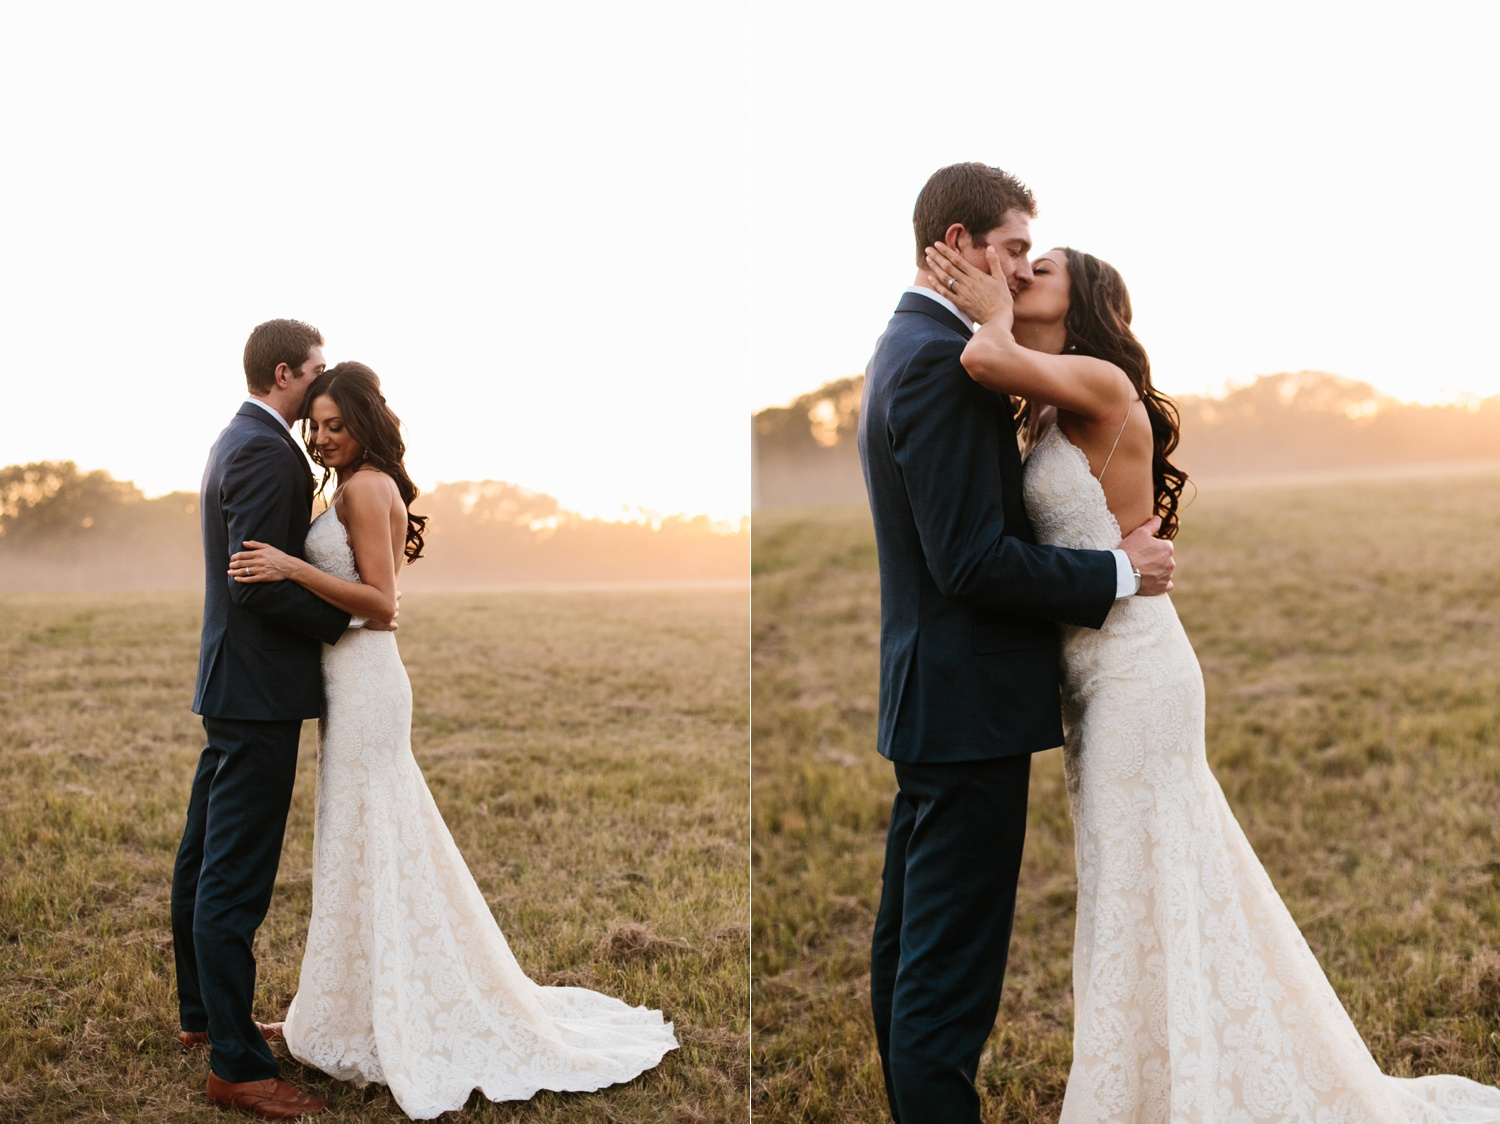 Erica + Henry | a bohemian inspired wedding at Chandlers Gardens in Salina, TX by North Texas Wedding Photographer Rachel Meagan Photography 107